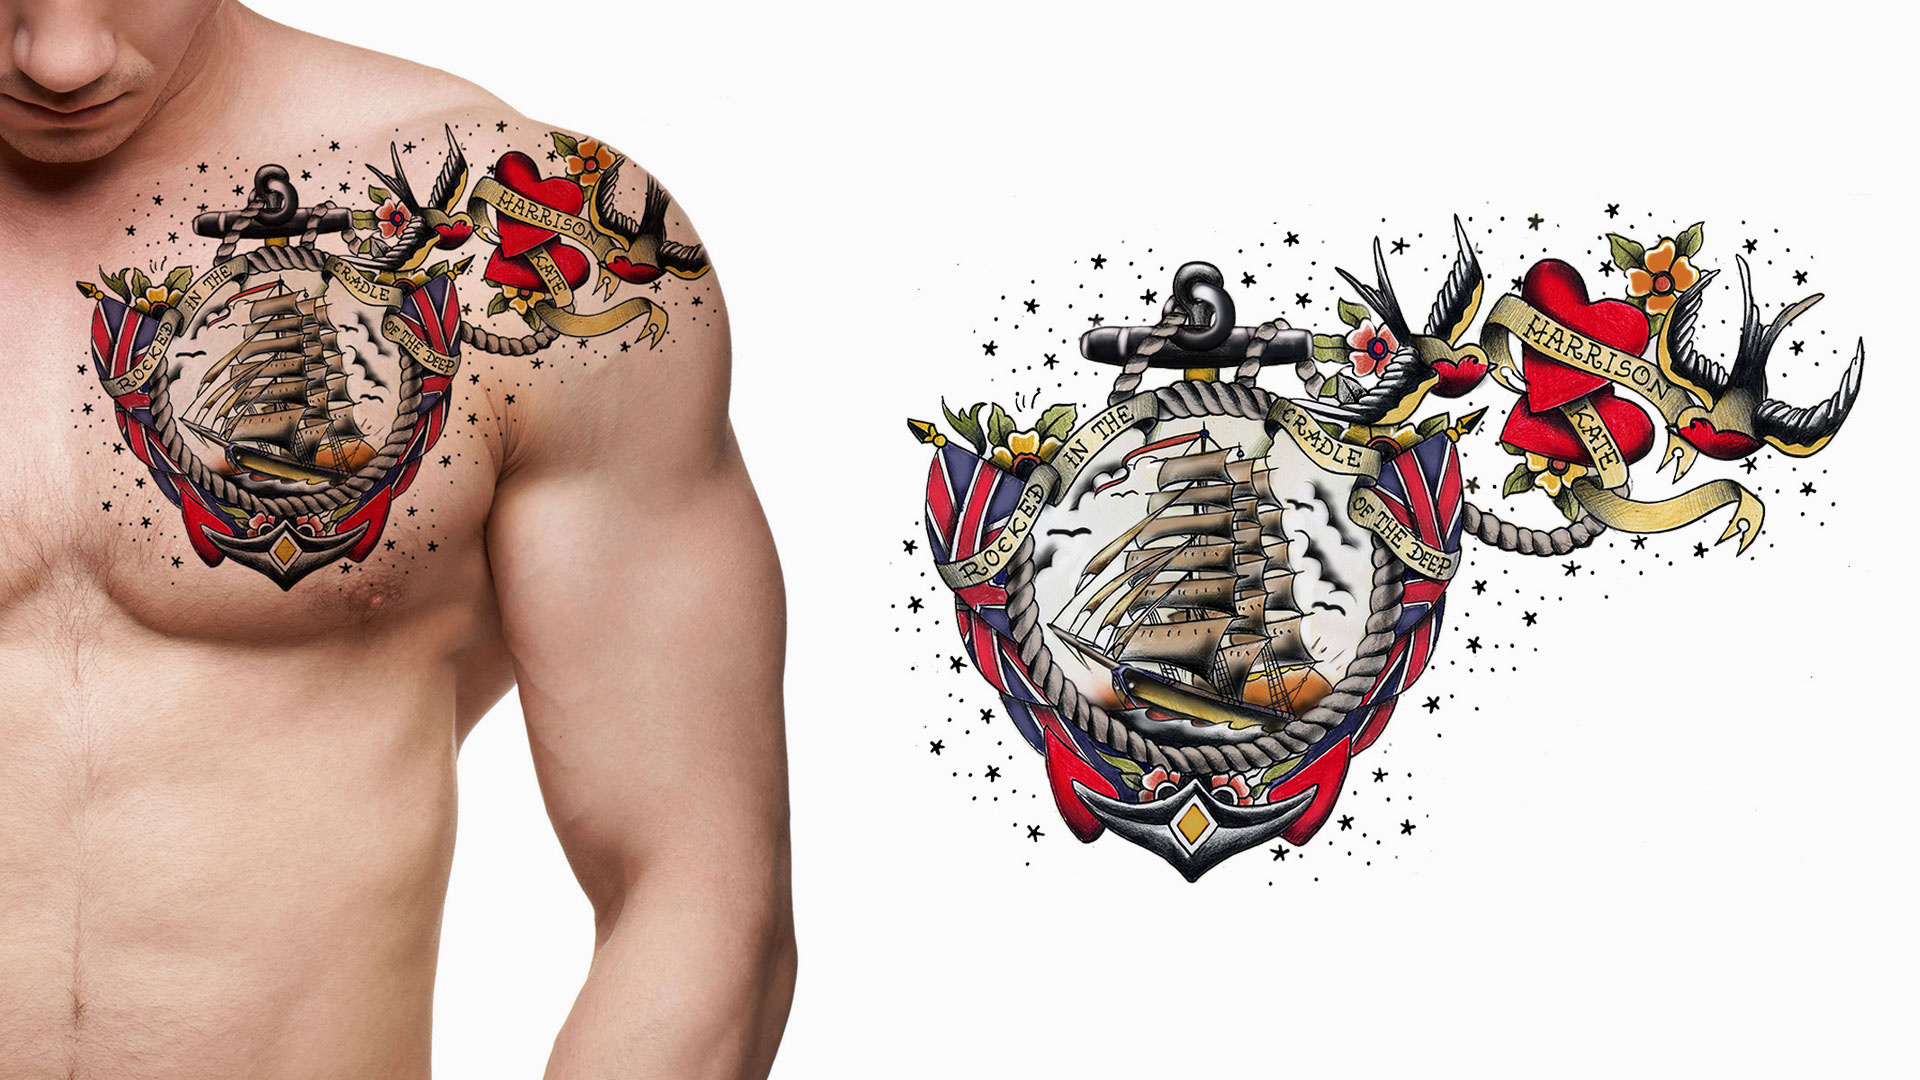 Click here for our old school tattoo gallery with 55 awesome old school tattoos, including gypsy, ship, anchor, pin up, eagle and Sailor Jerry designs.